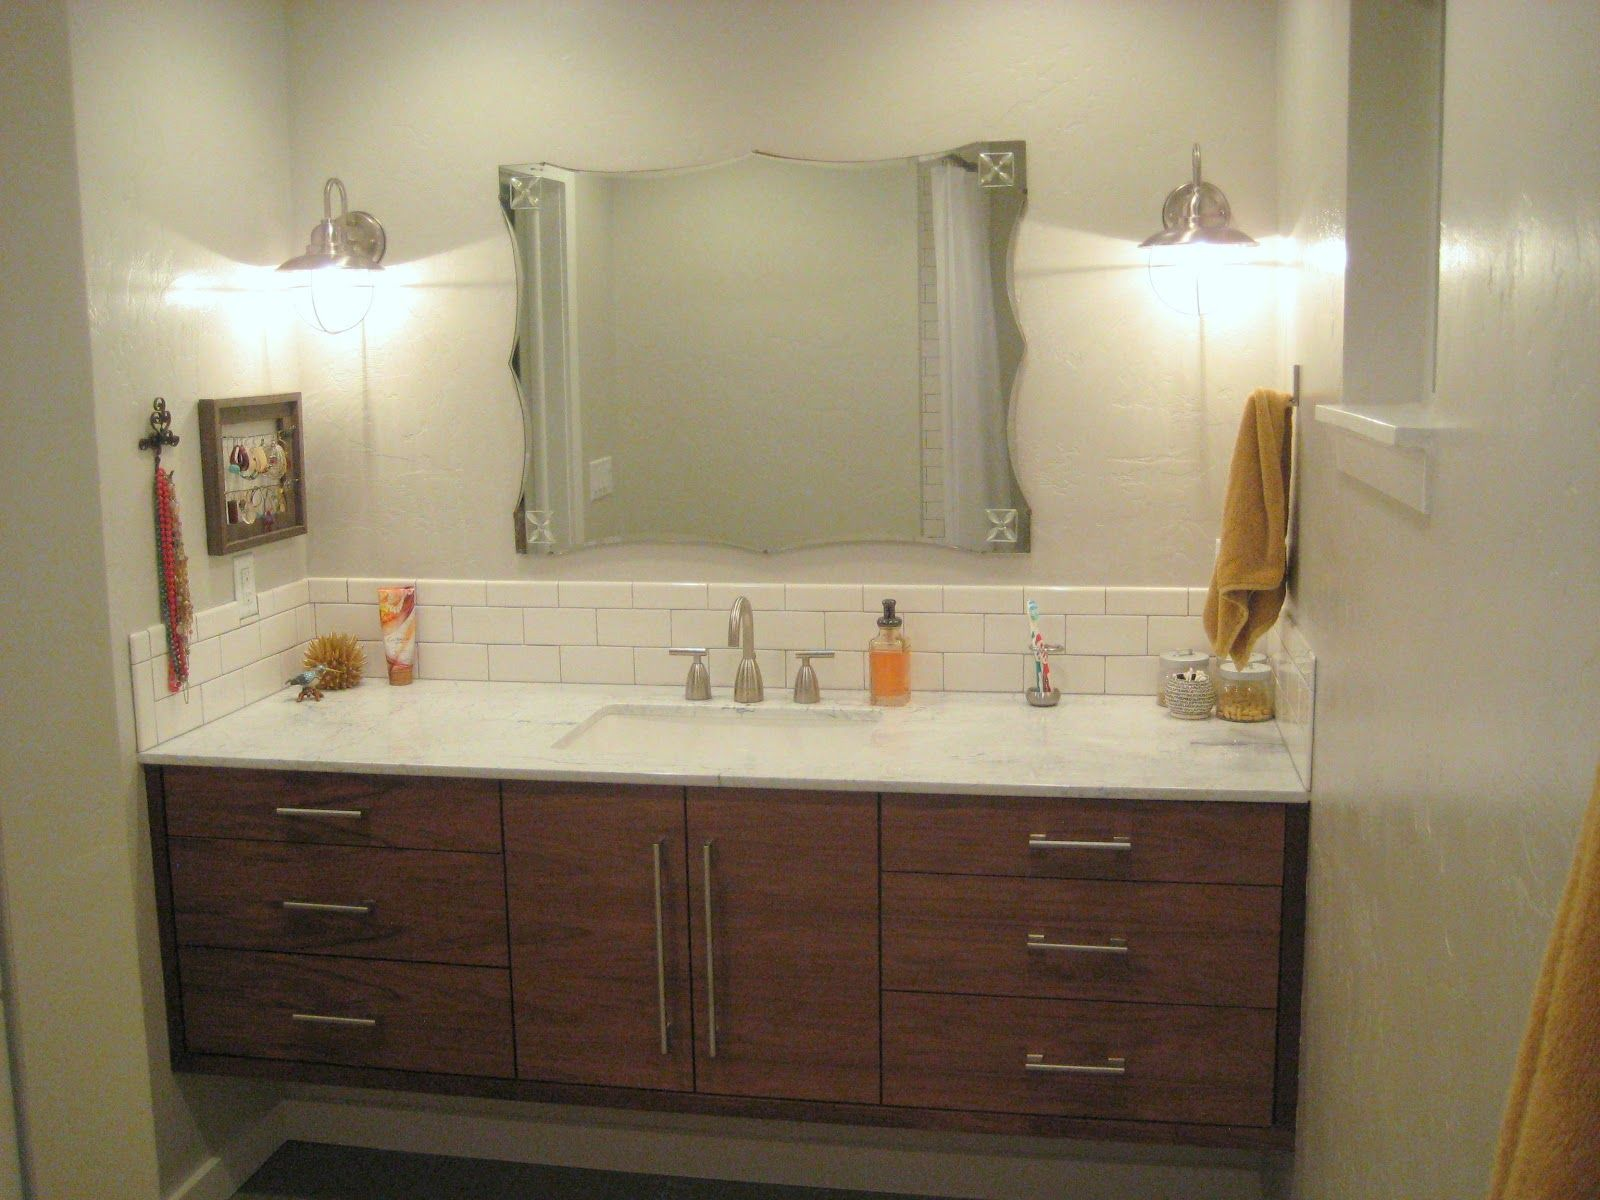 Combine Two Ikea Products To Create A Tiny Bathroom Vanity Tiny Bathroom Sink Narrow Bathroom Vanities Bathroom Model